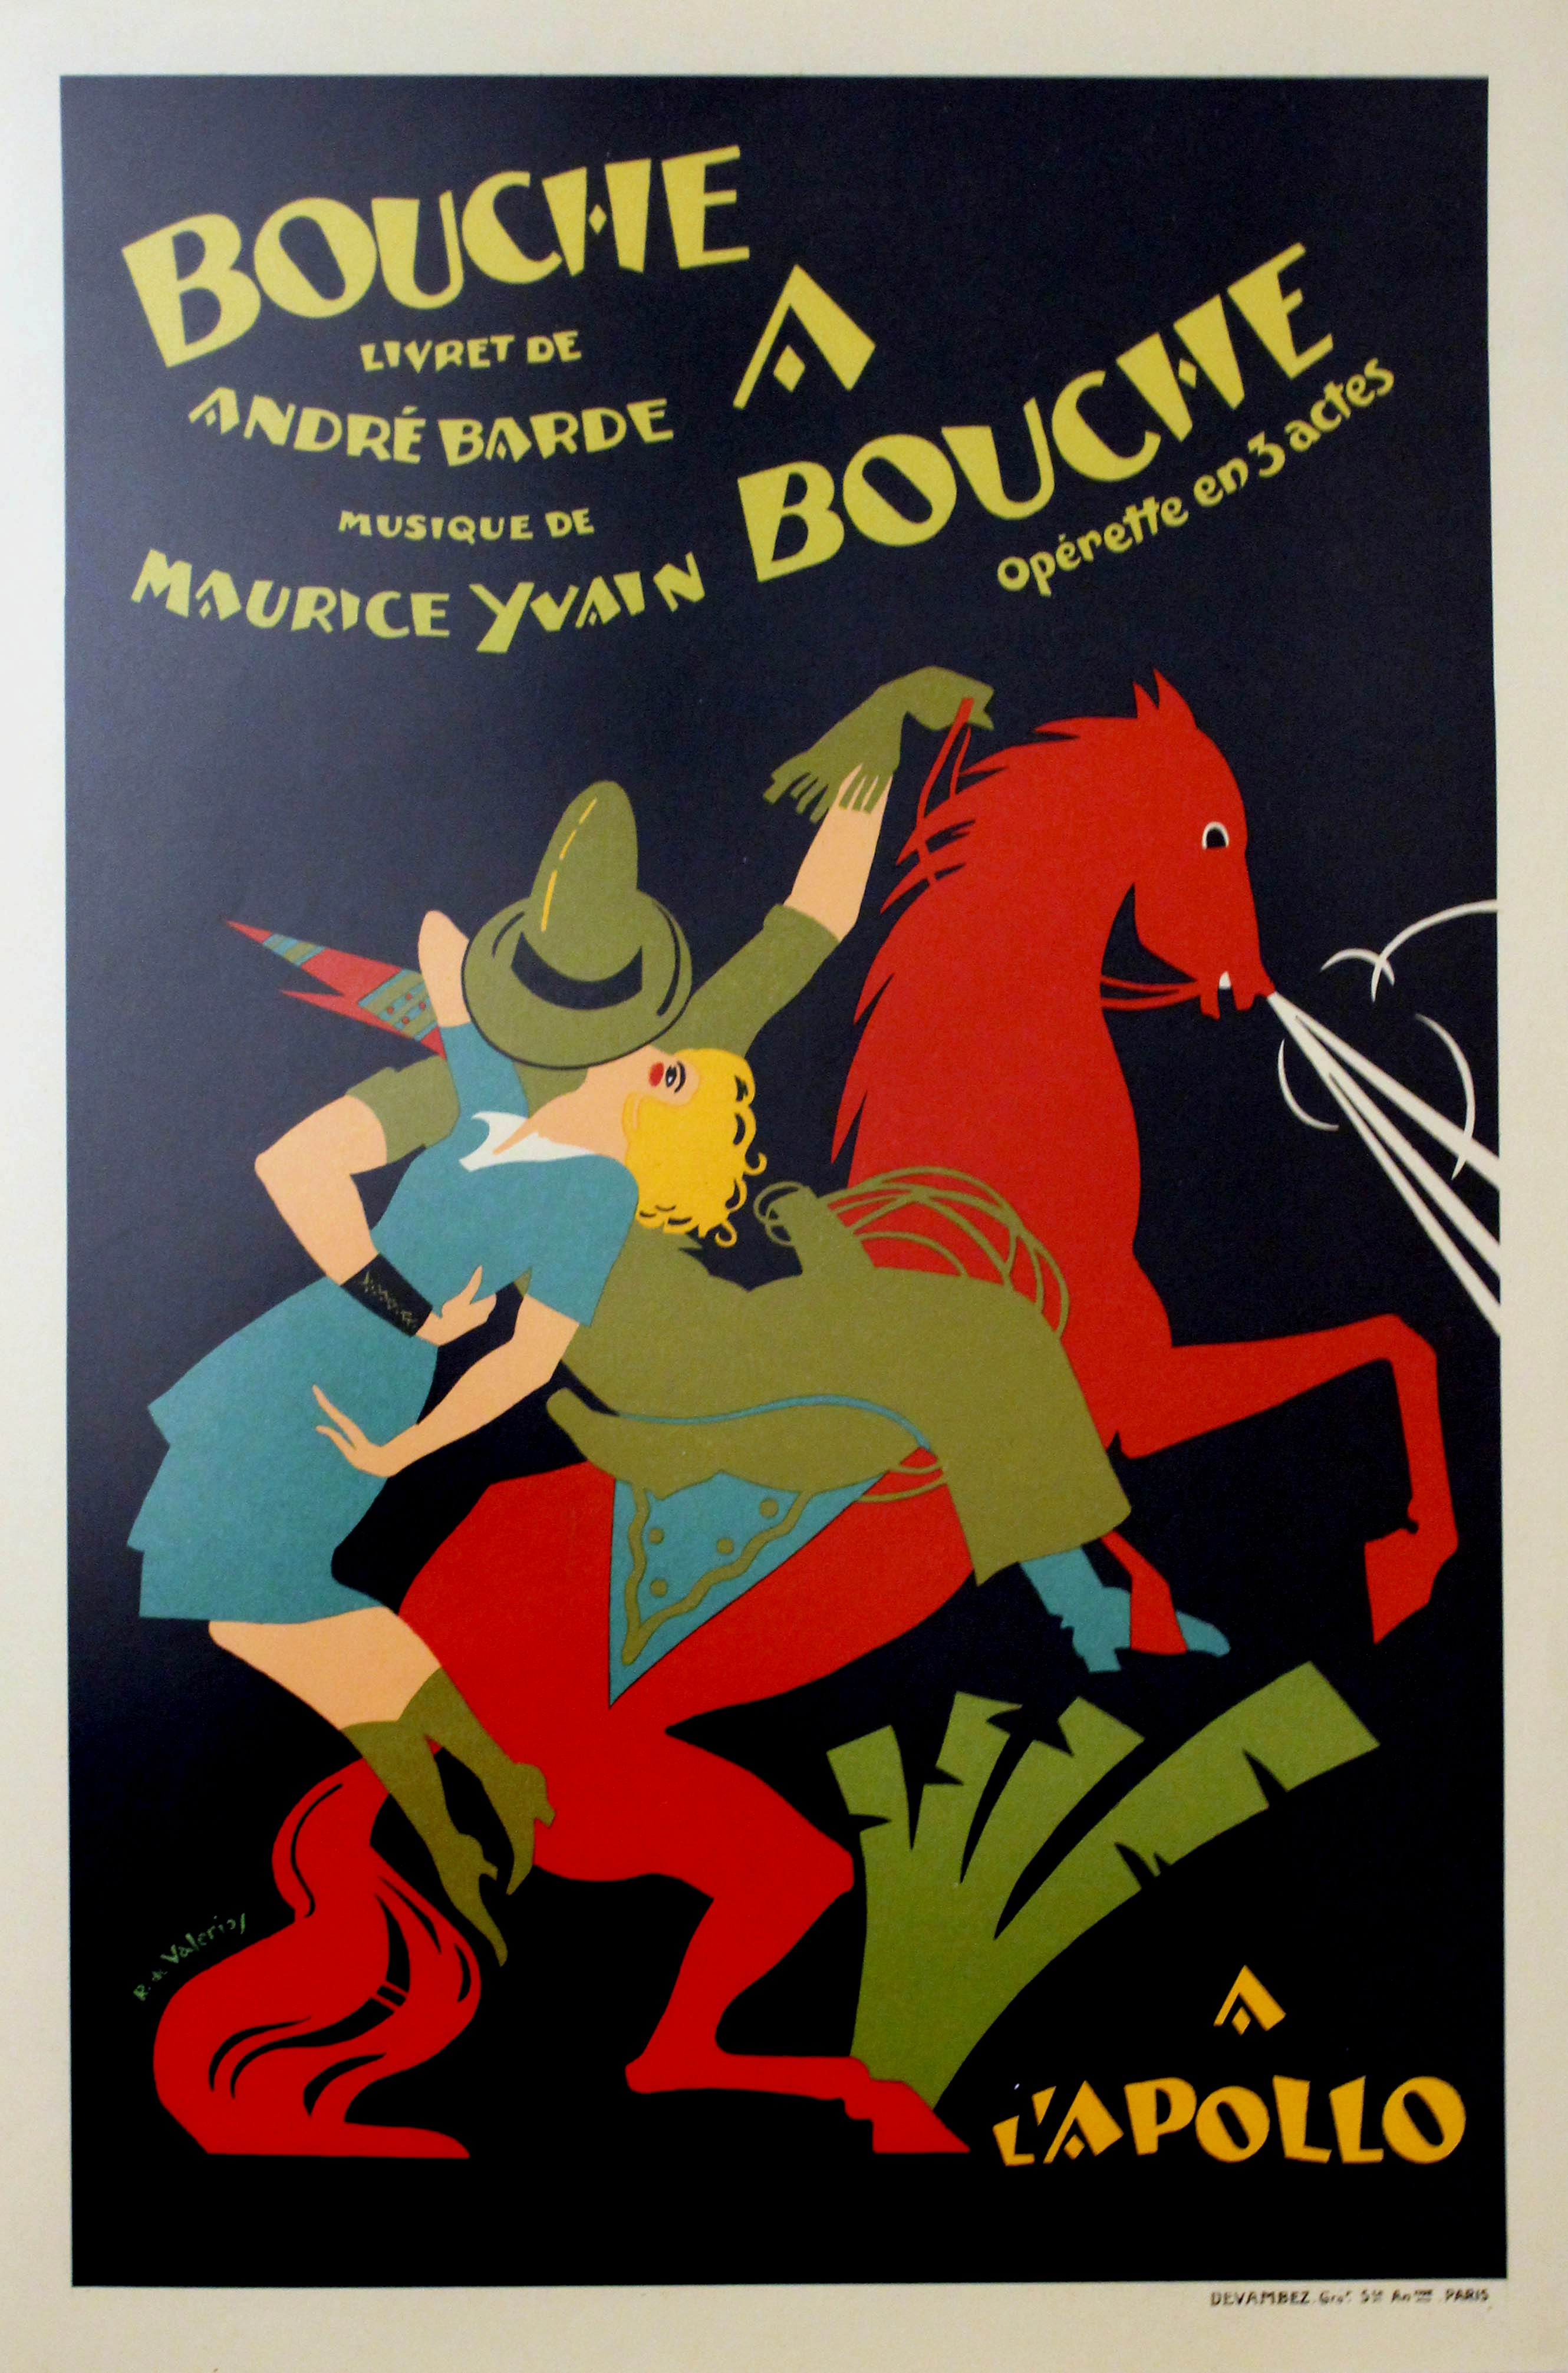 Lot 1203 - Advertising Poster Mouth to Mouth operetta France